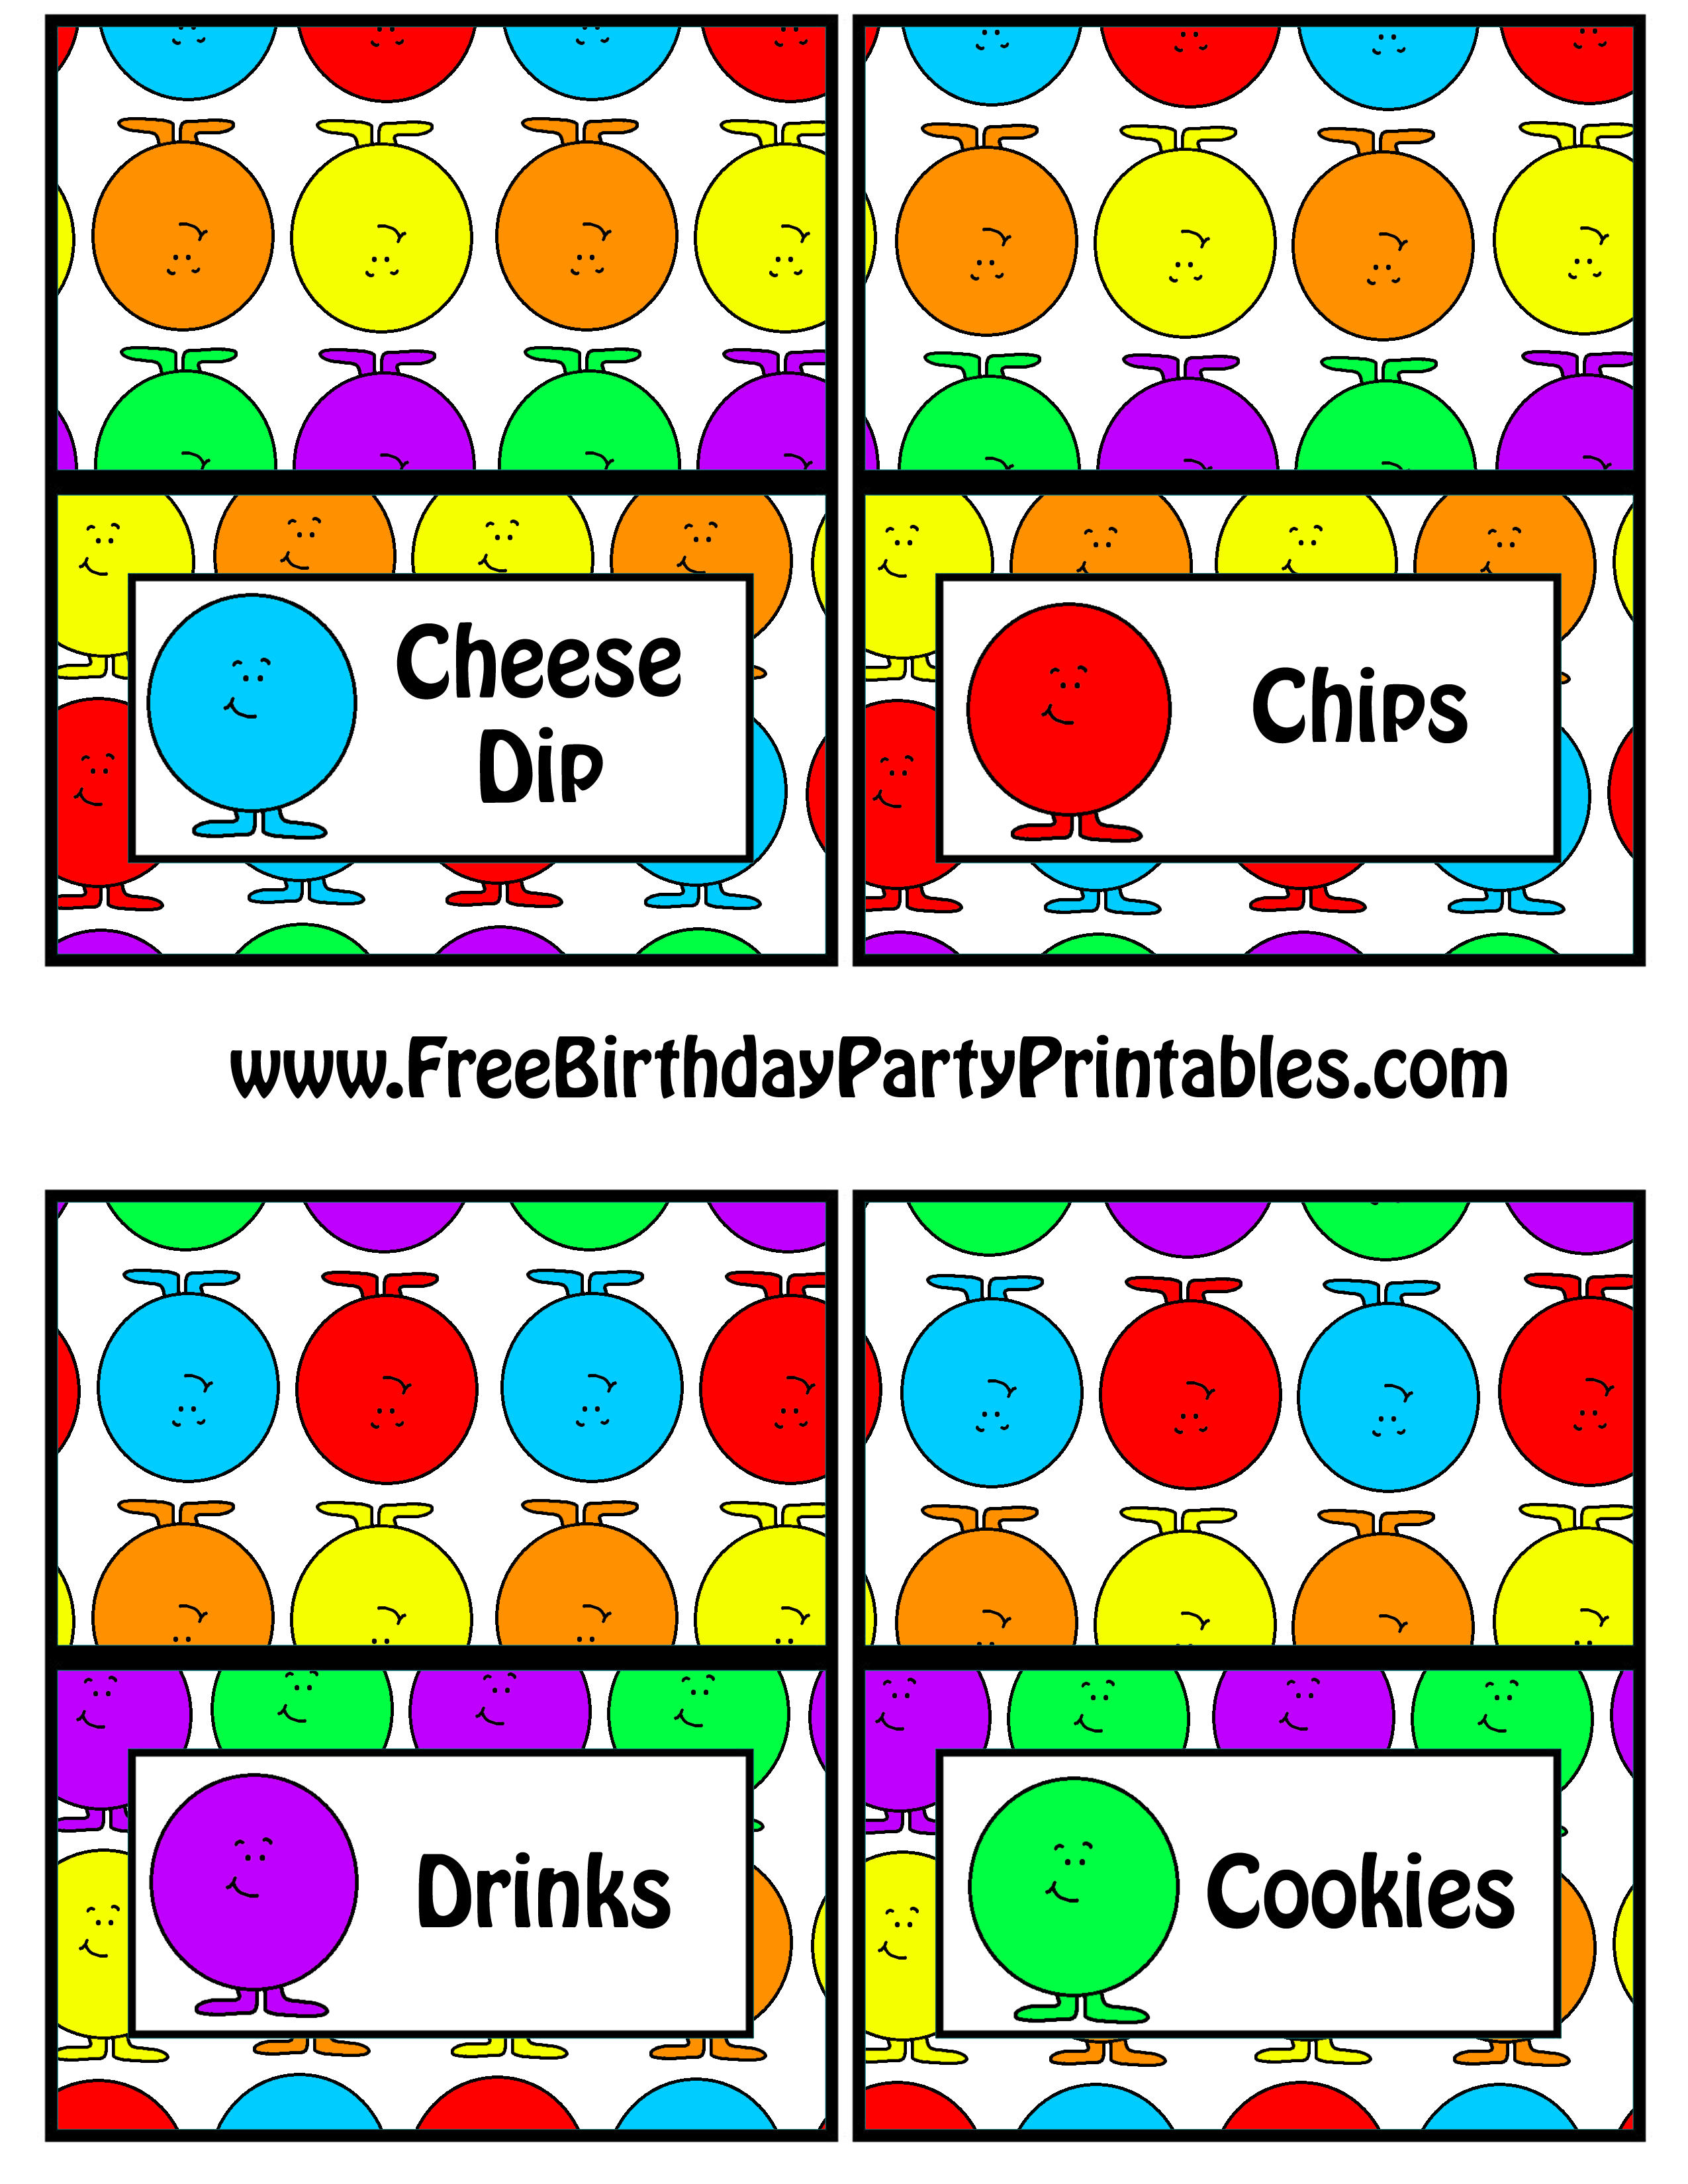 Gumball Birthday Party Food Card Tent Label Printable- Cheese Dip Chips Drinks Cookies  sc 1 st  Free Birthday Party Printables & Free Gumball Birthday Party Printables- Free Birthday Party Printables